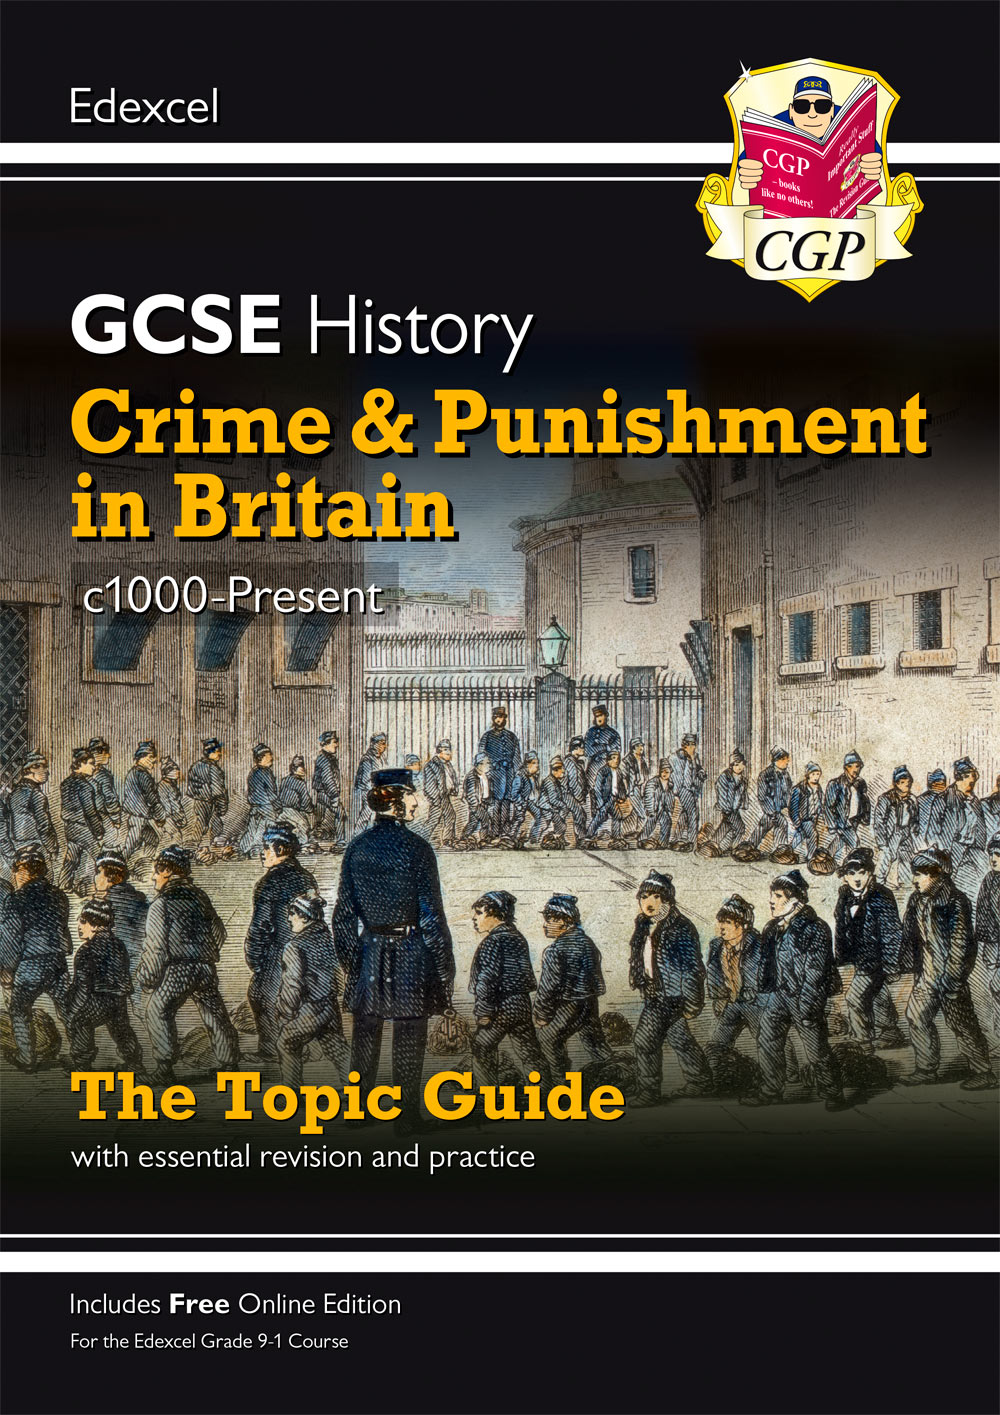 HECPO41 - New Grade 9-1 GCSE History Edexcel Topic Guide - Crime and Punishment in Britain, c1000-Pr